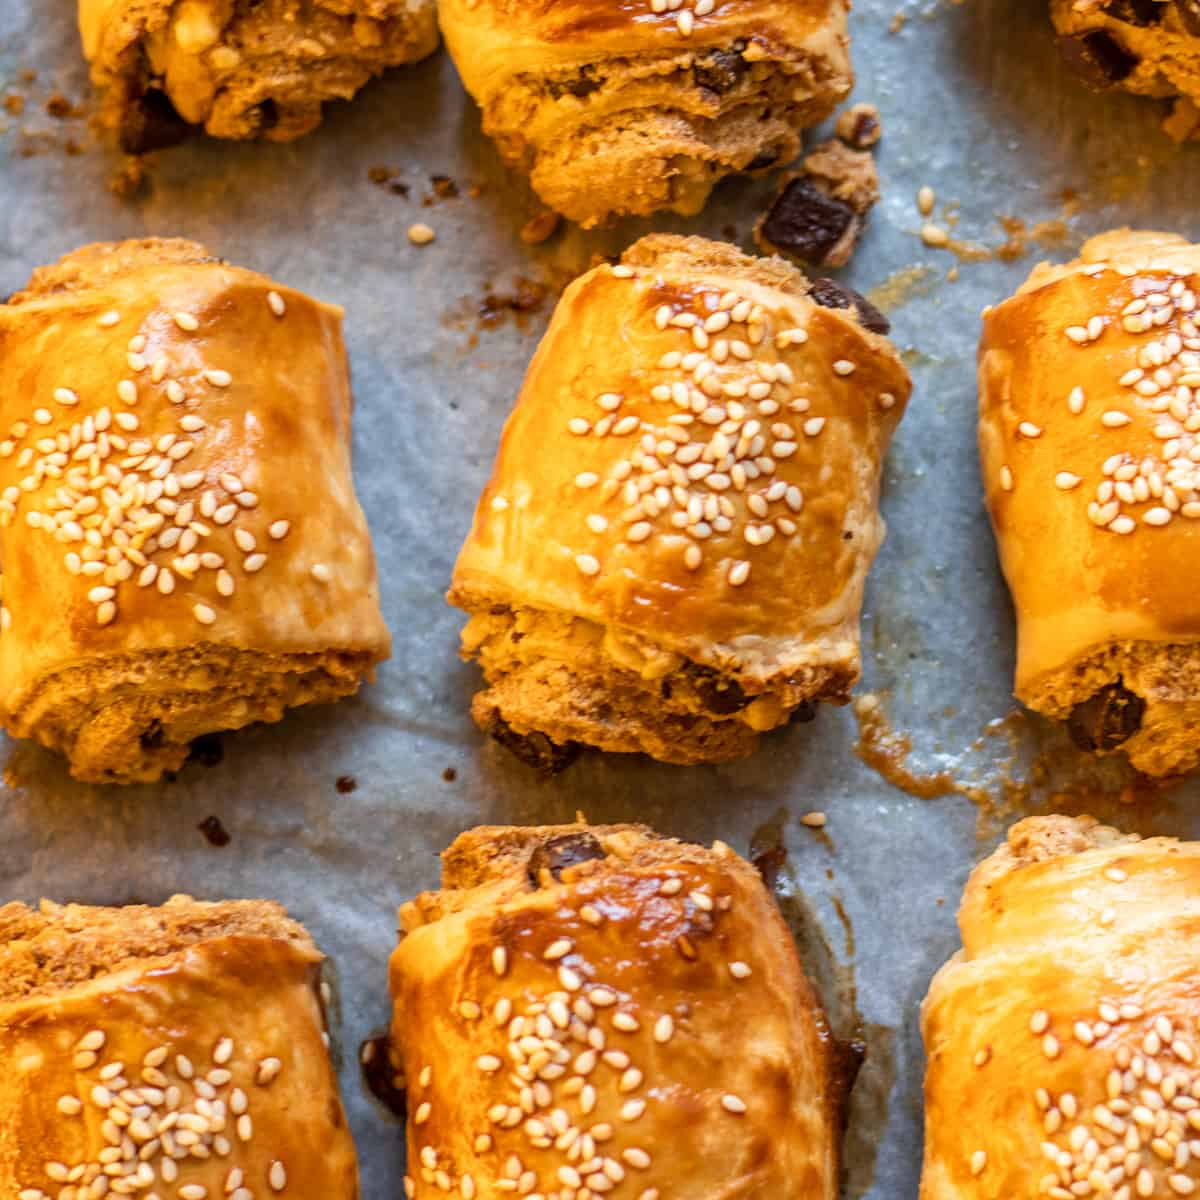 Golden and crispy chocolate and tahini filled pastries